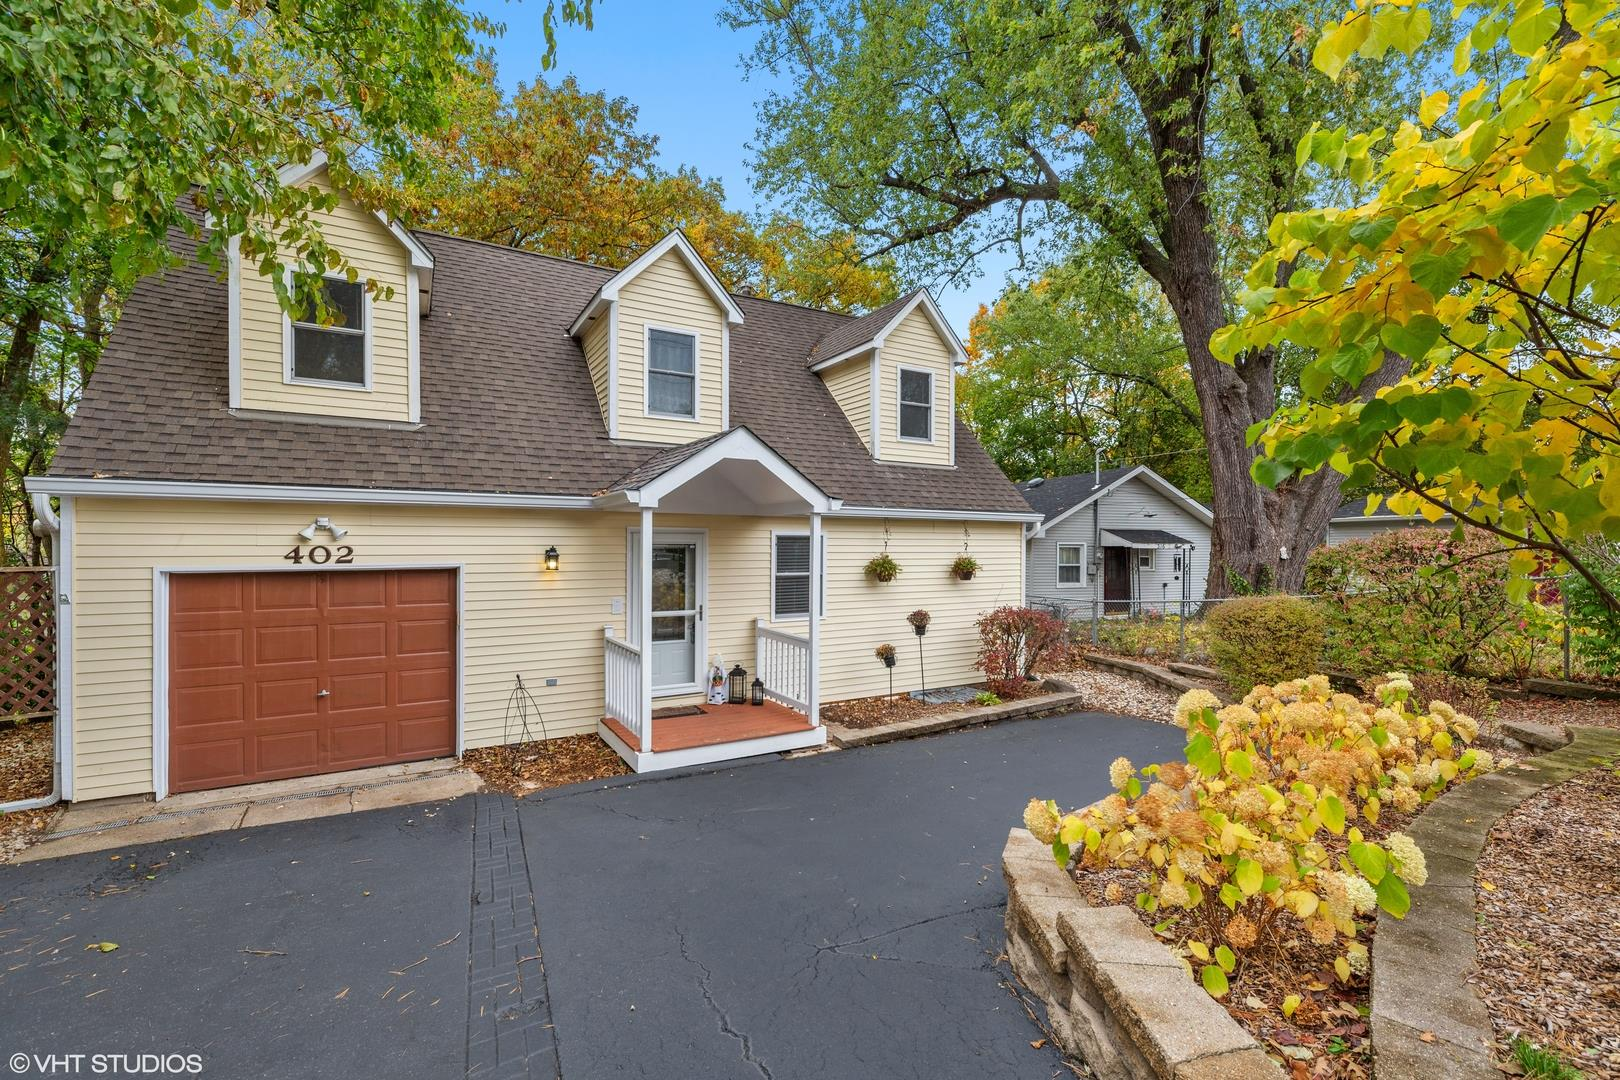 402 Nippersink Drive, McHenry, IL 60050 - #: 10887130